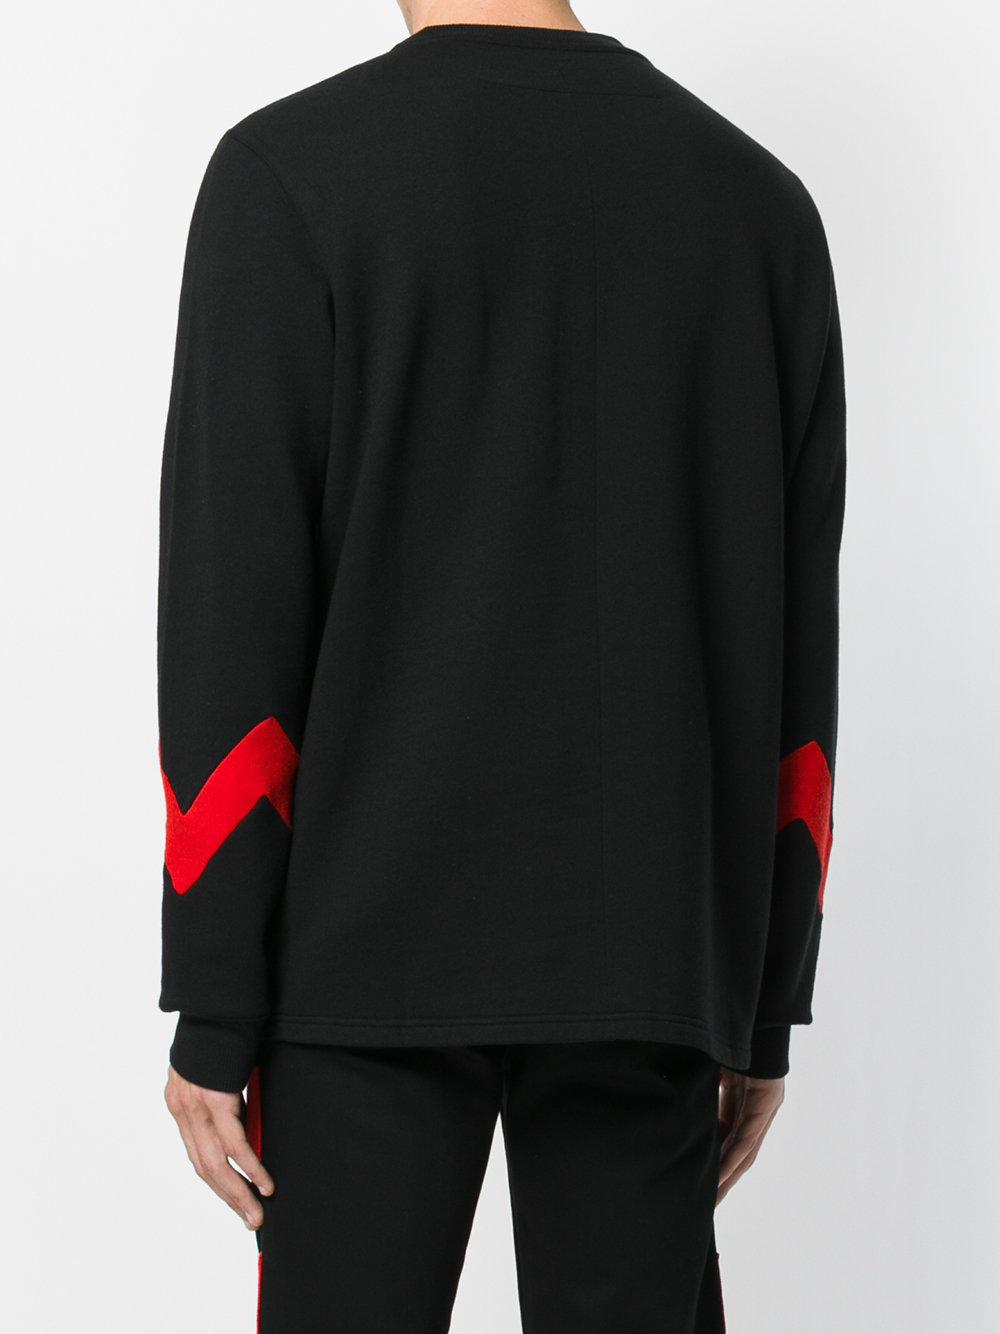 Givenchy Cashmere Crew Neck Jumper in Black for Men